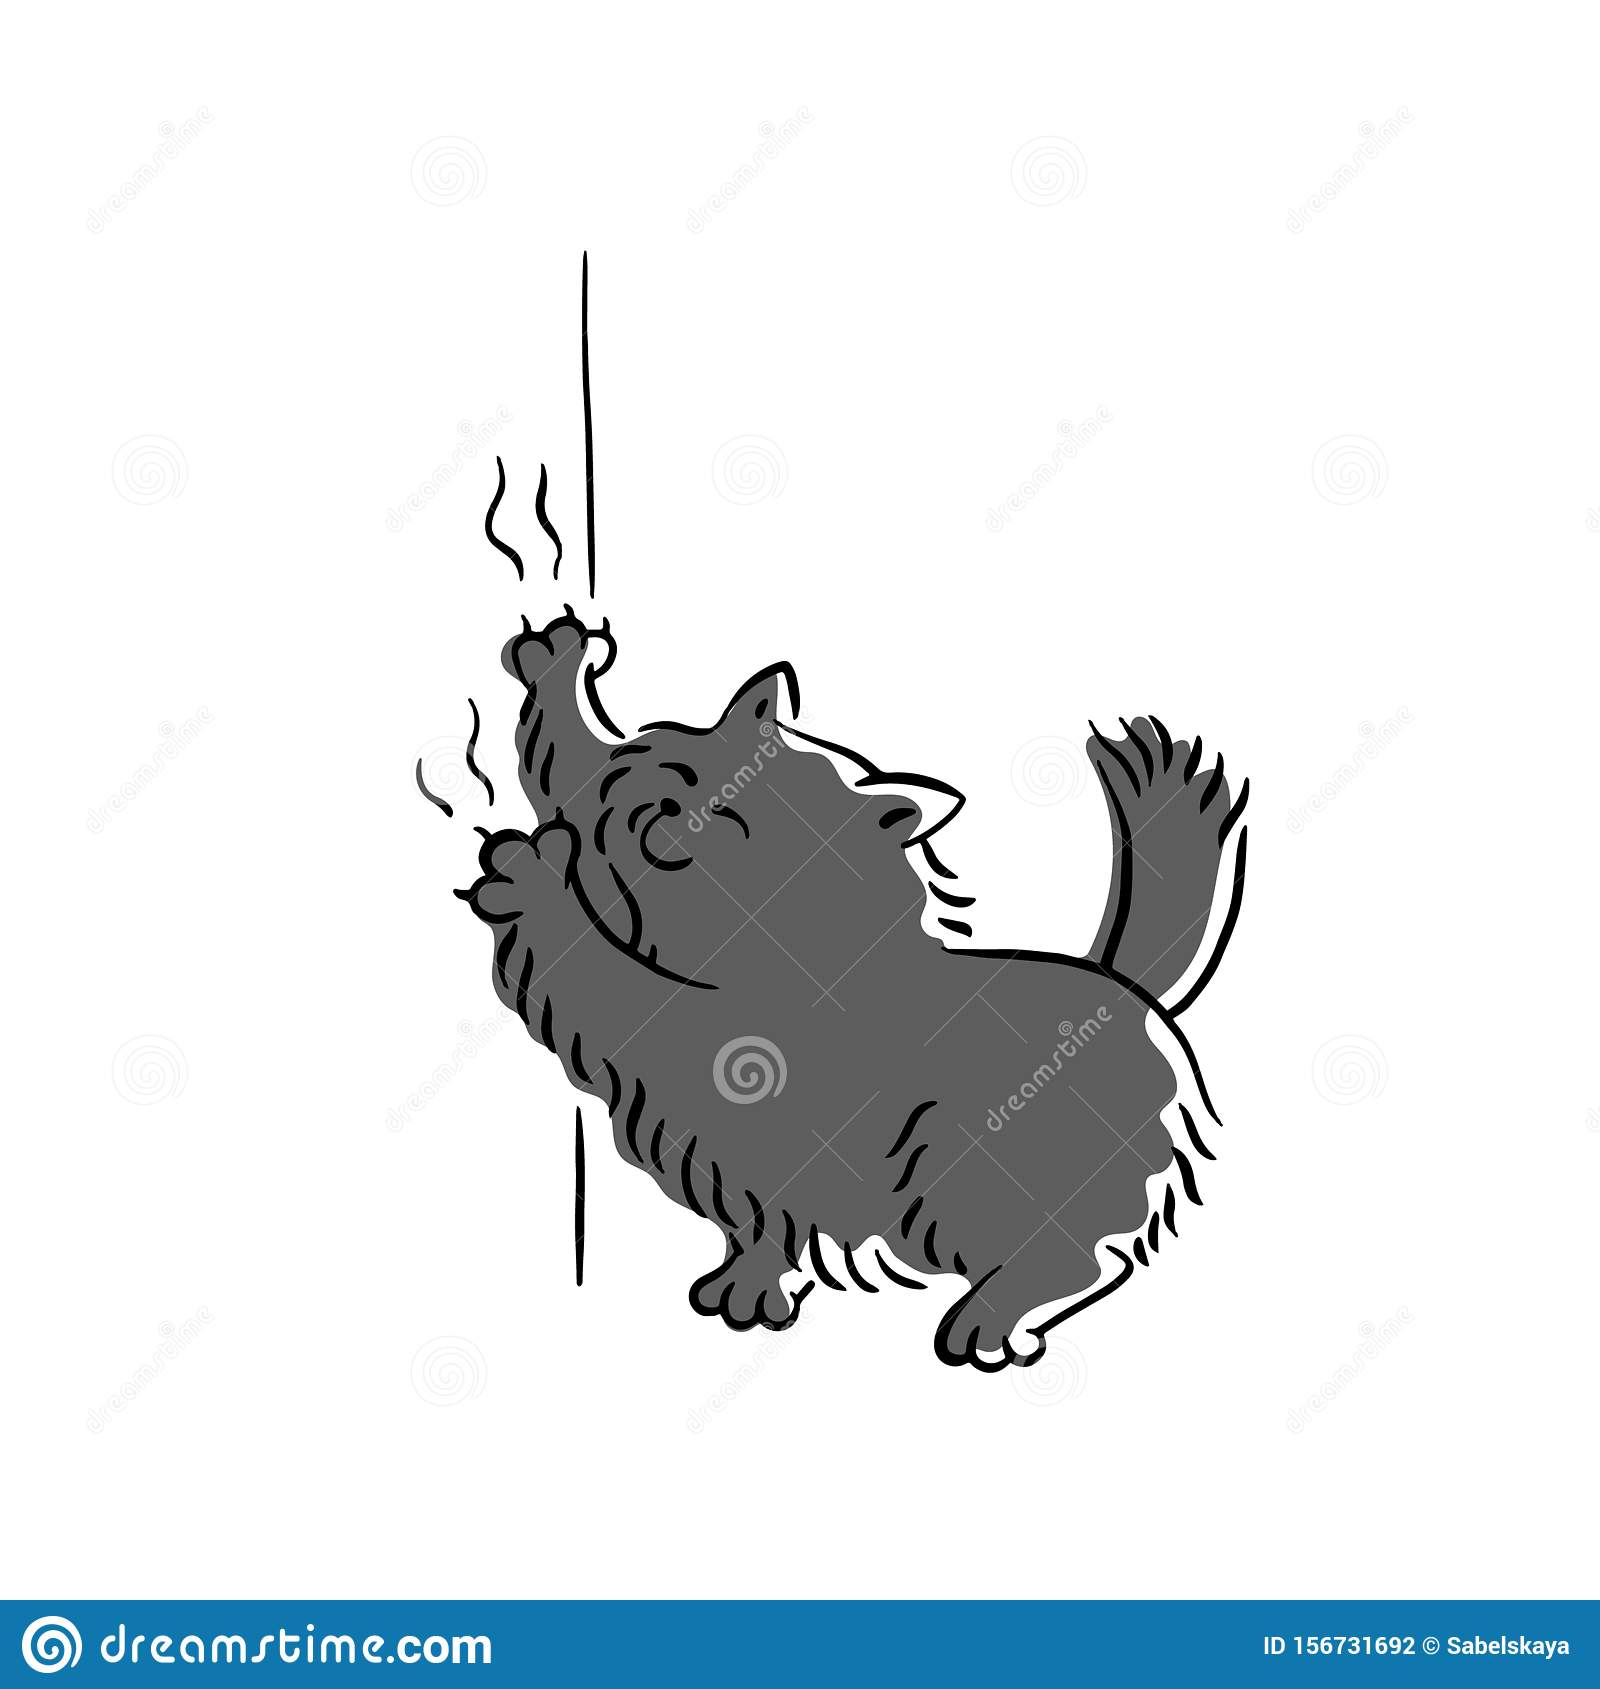 Bad Black Cat Scratching Wallpaper Sketch Cartoon Vector Illustration Isolated Stock Vector Illustration Of Background Colorful 156731692